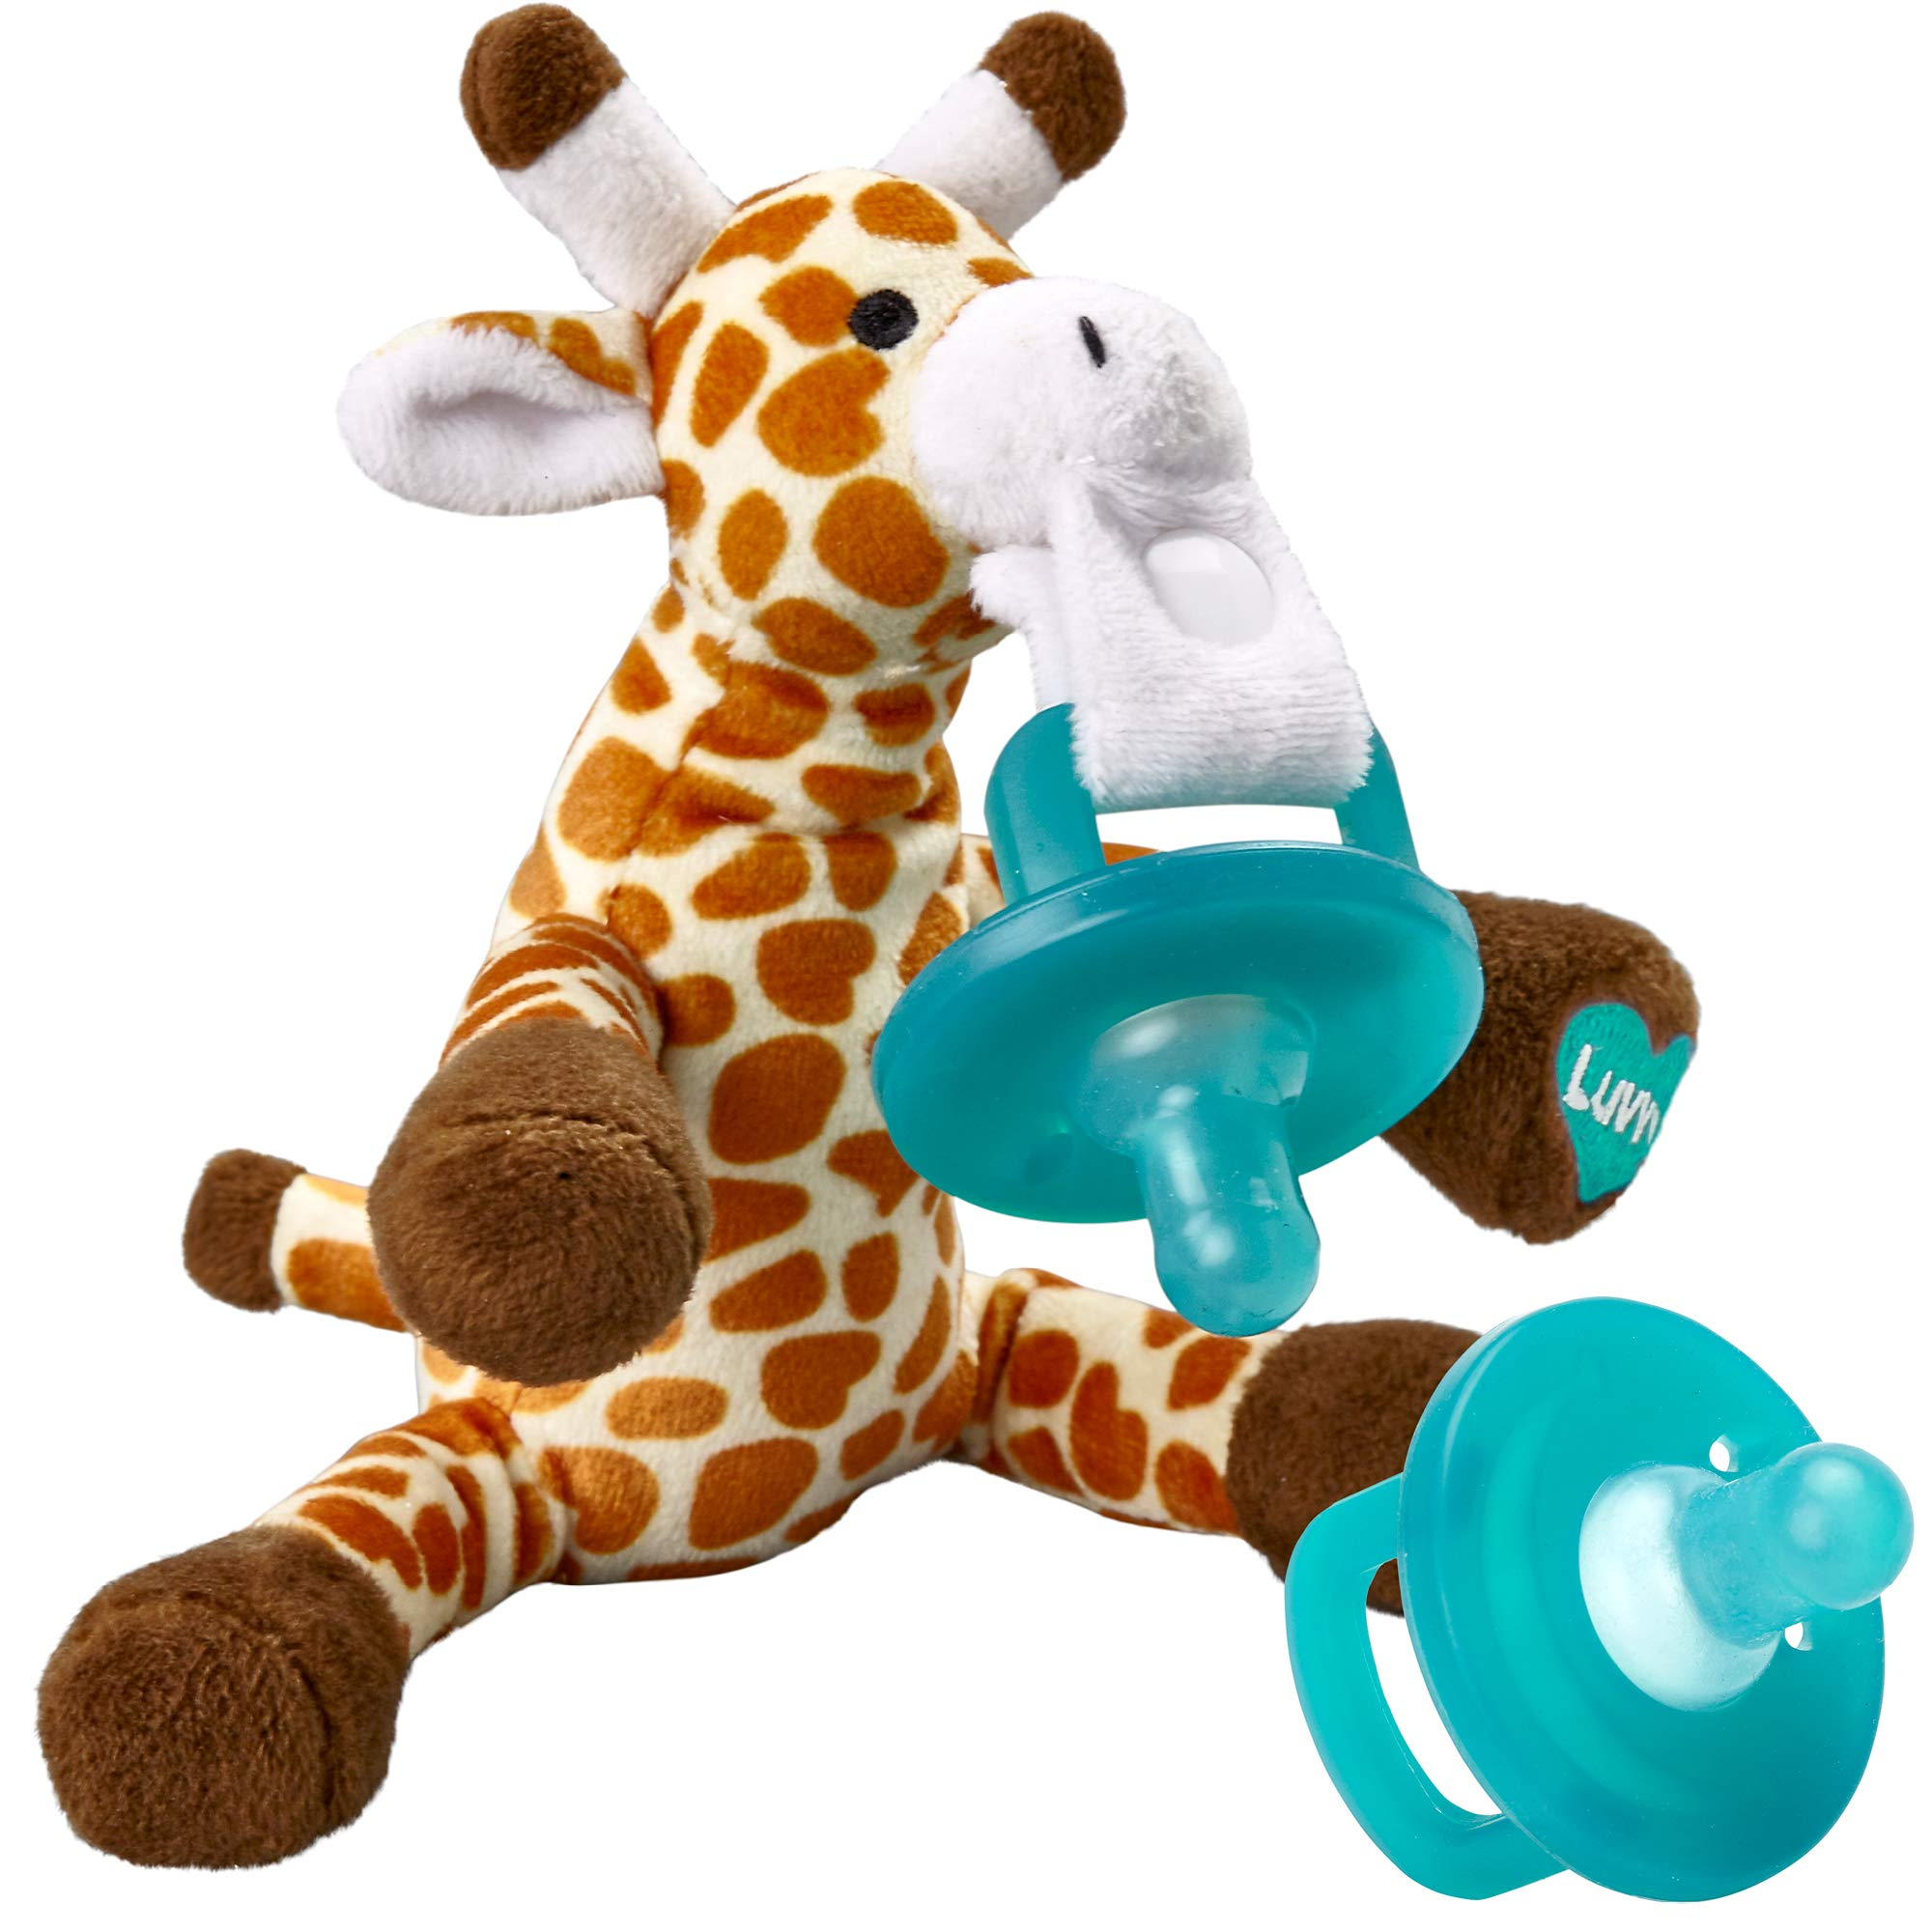 Infant Pacifier and Plush Giraffe Holder - Detachable Soft Stuffed Animal Toy Plus Removable Baby Pacifiers - Latex Free - Bonus Pacifier - by Luvvy by Luvvy